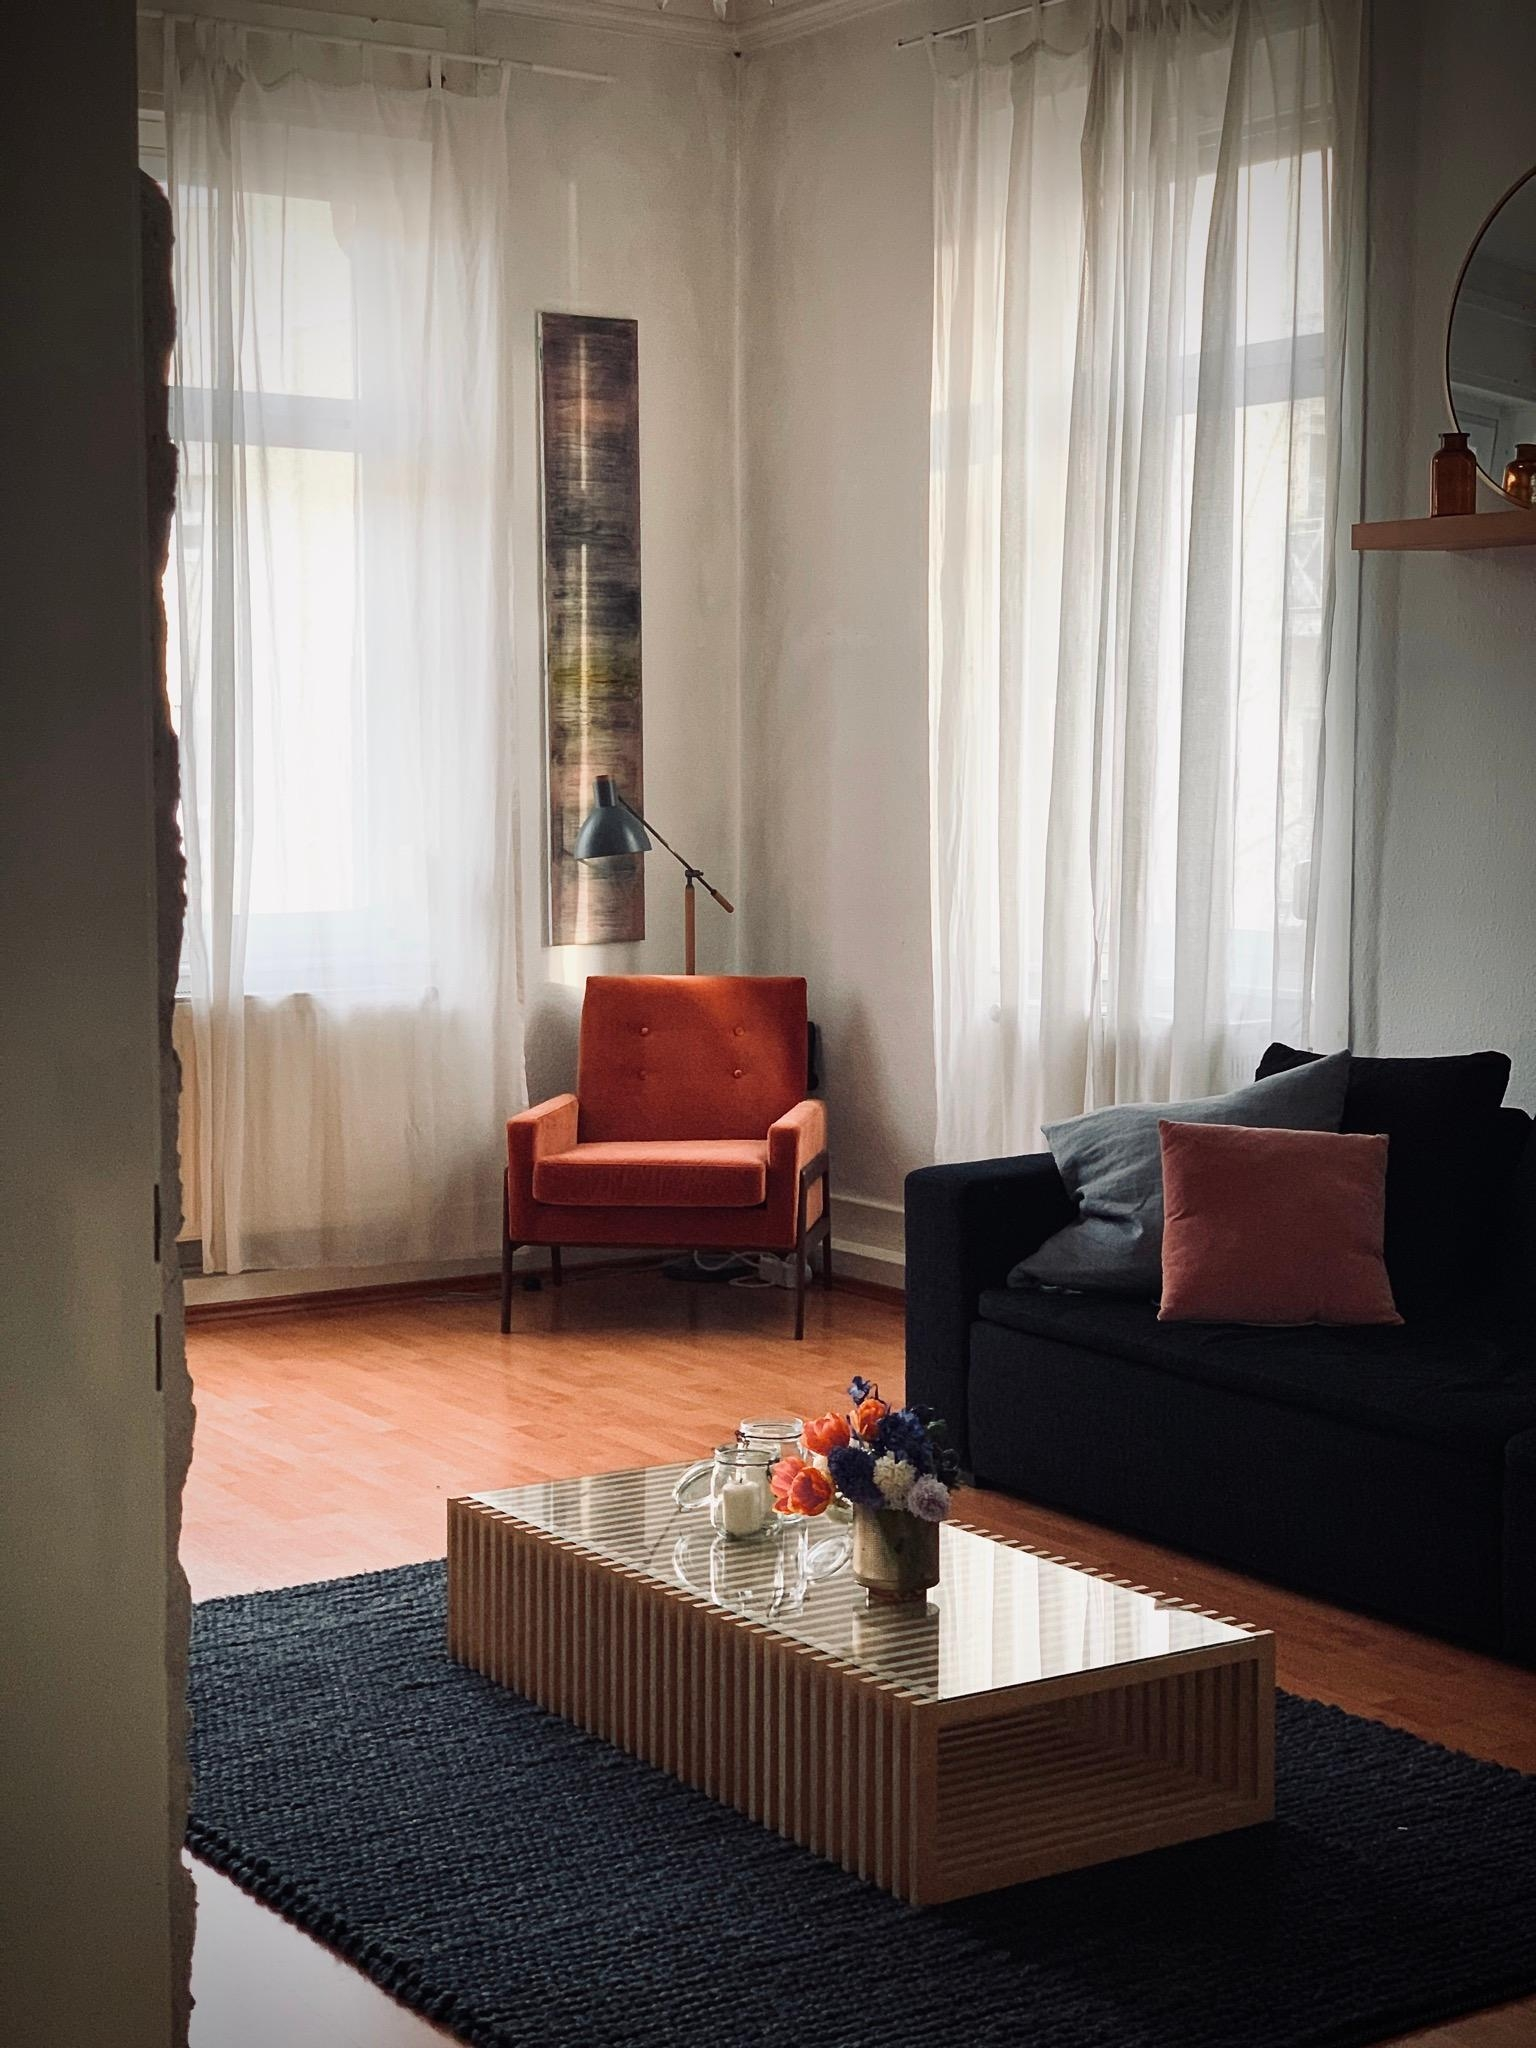 My mood happy weekend  wohnzimmer freshflowers interior couchstyle couchliebt altbau  d95725c7 3fef 4f3b a807 c45cffd5cea7